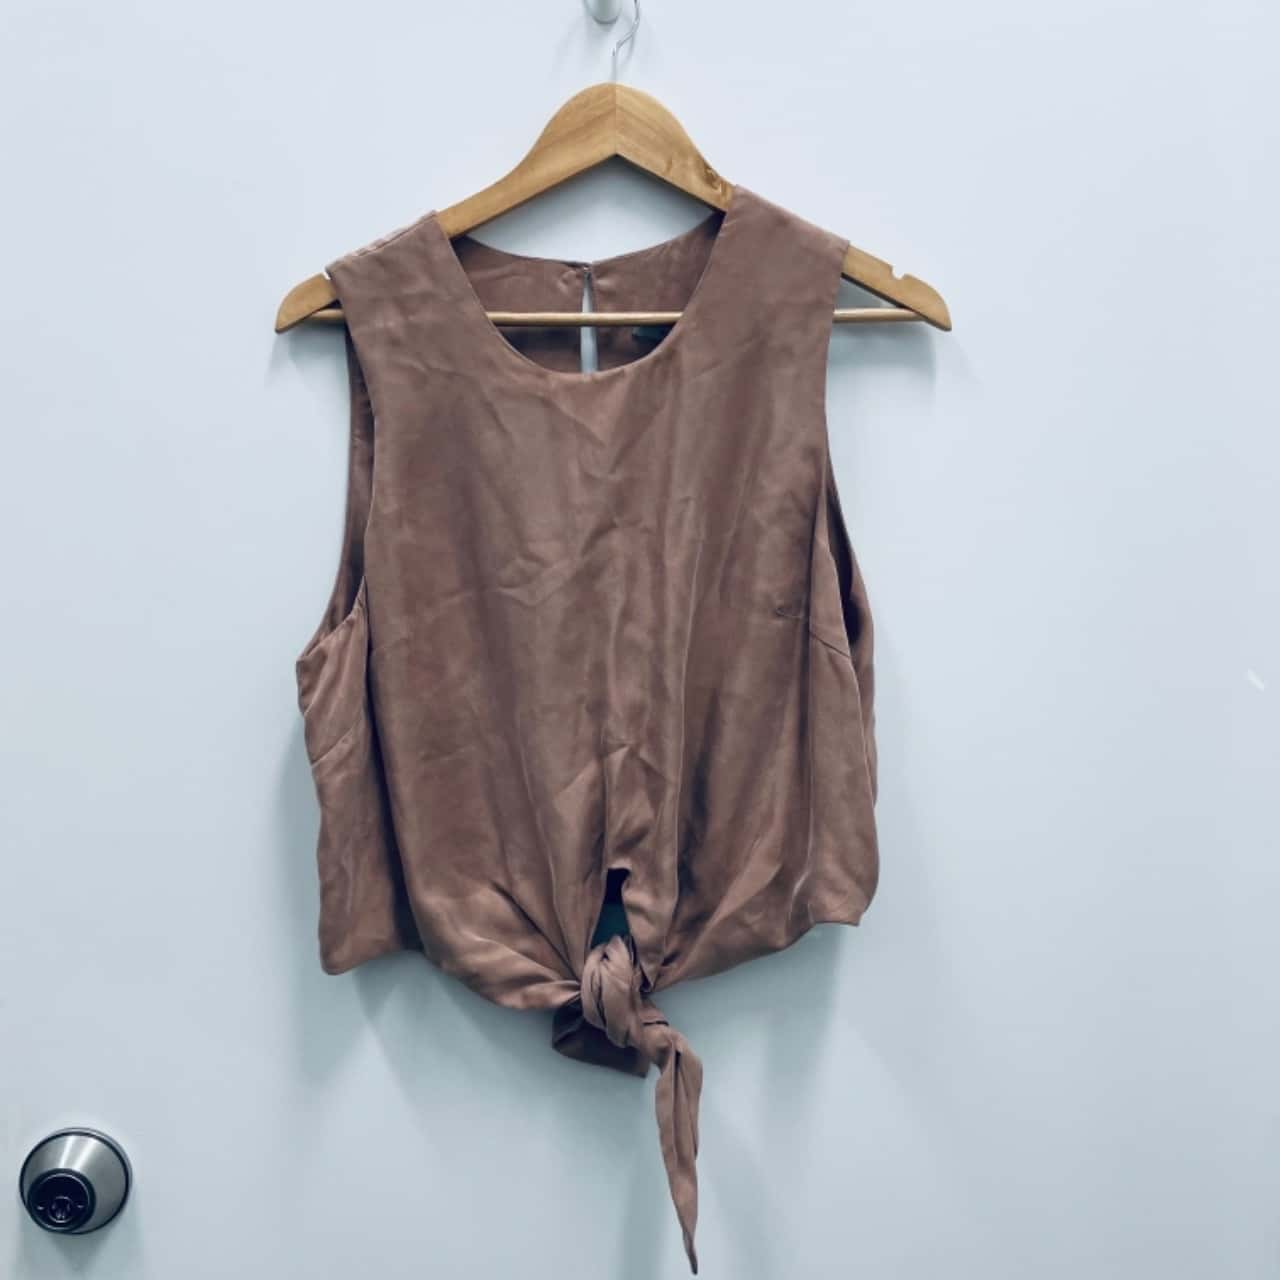 SHEIKE Womens Sleeveless Tie-Front Top Size 14 Brown